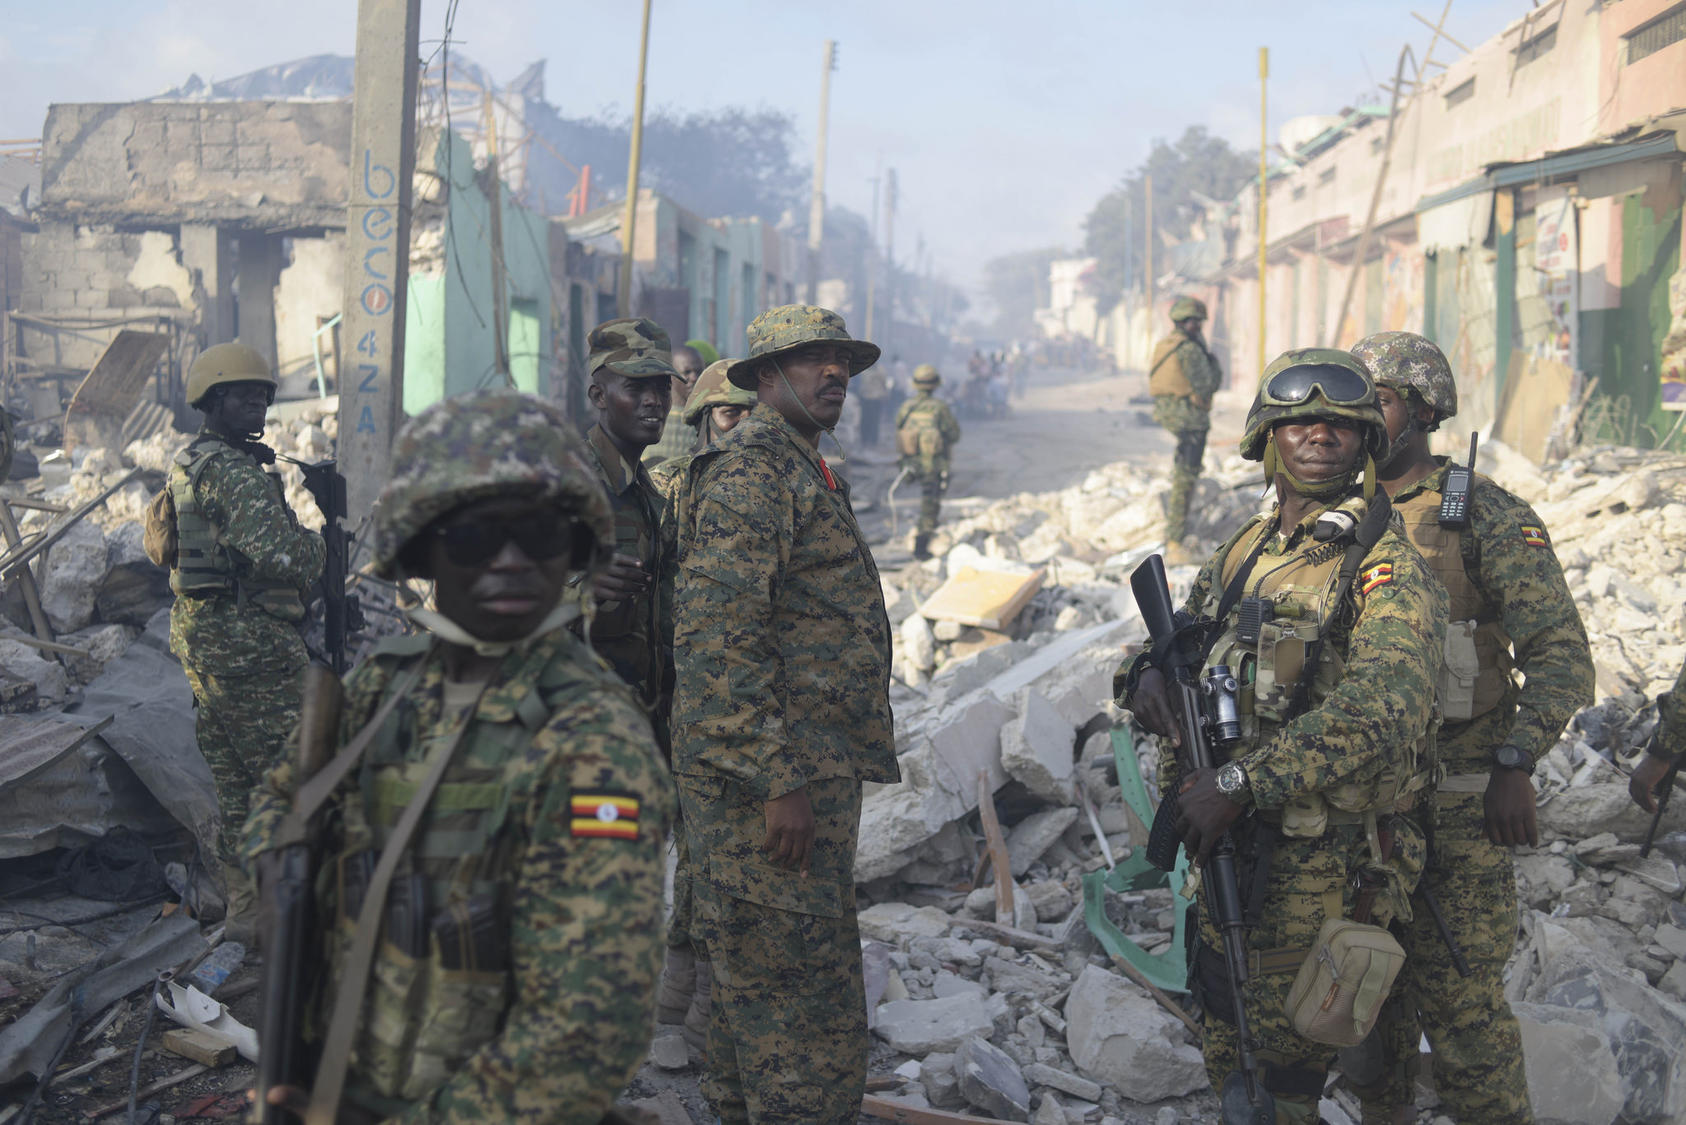 The African Union Mission in Somalia's Ugandan Contingent Commander, Brigadier General Kayanja Muhanga, visits the site of a VBIED attack conducted by the militant group al Shabaab in the Somali capital of Mogadishu on October 15, 2017. Photo Courtesy of Flickr/AMISOM Photo/Tobin Jones